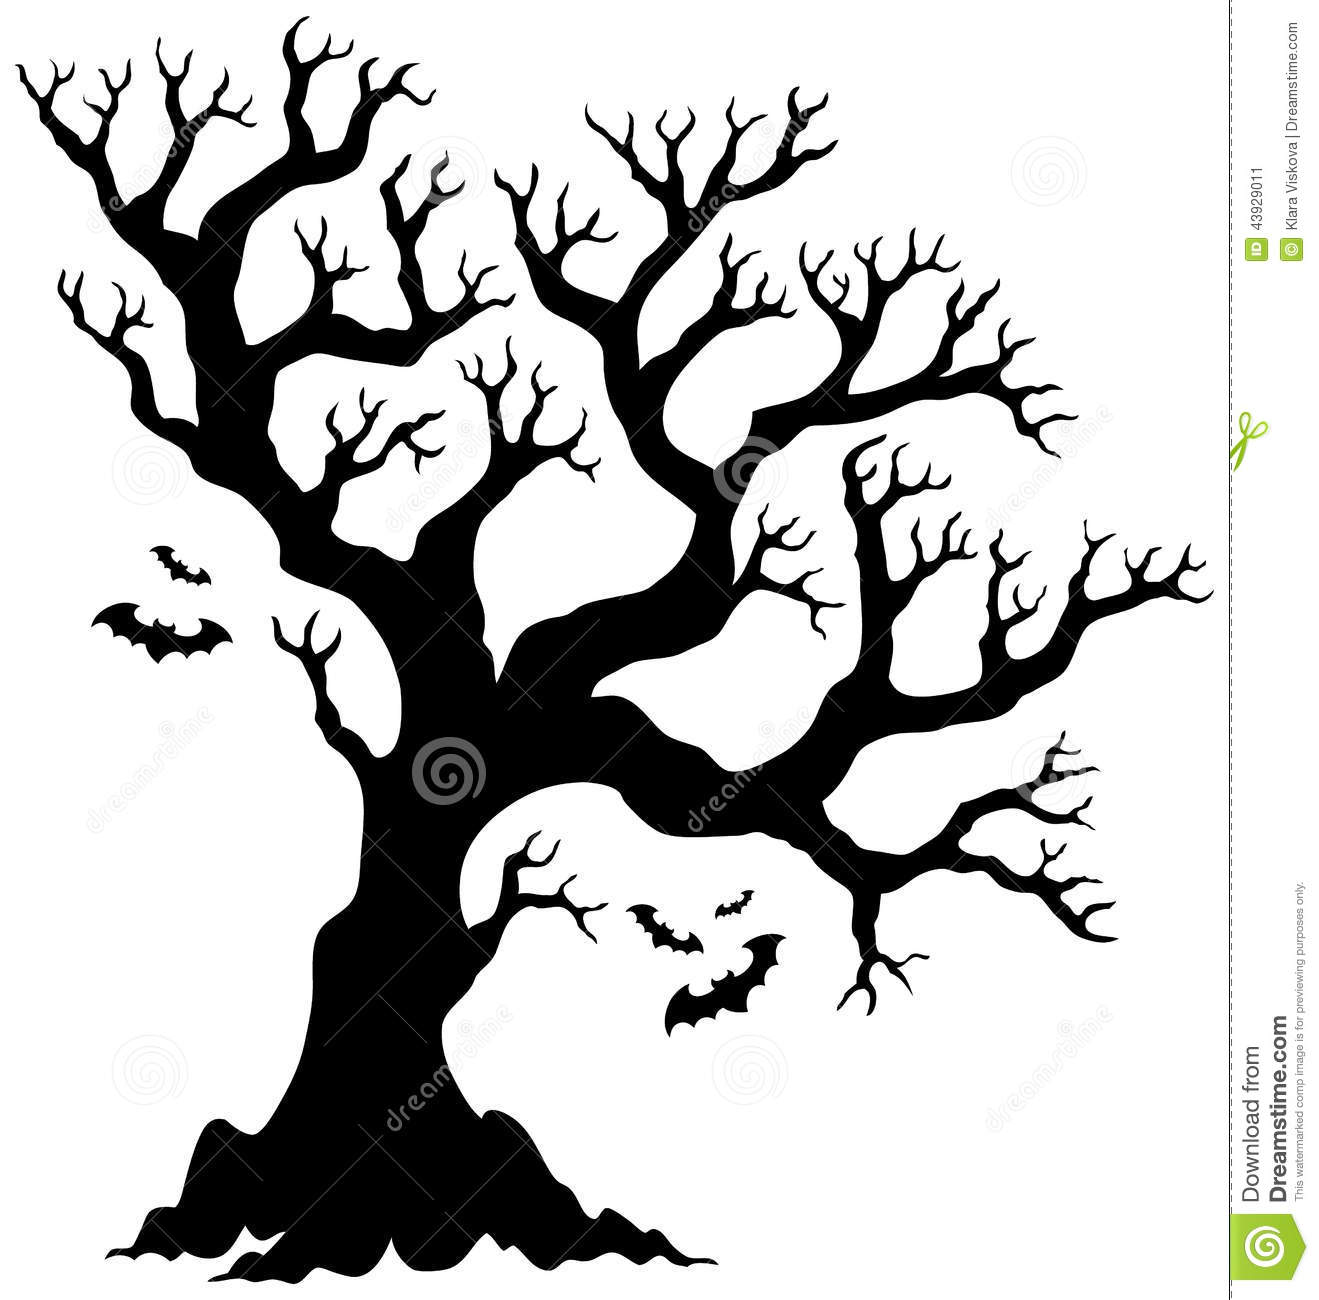 spooky tree silhouette at getdrawings com free for personal use rh getdrawings com free spooky tree clipart Creepy Tree Clip Art